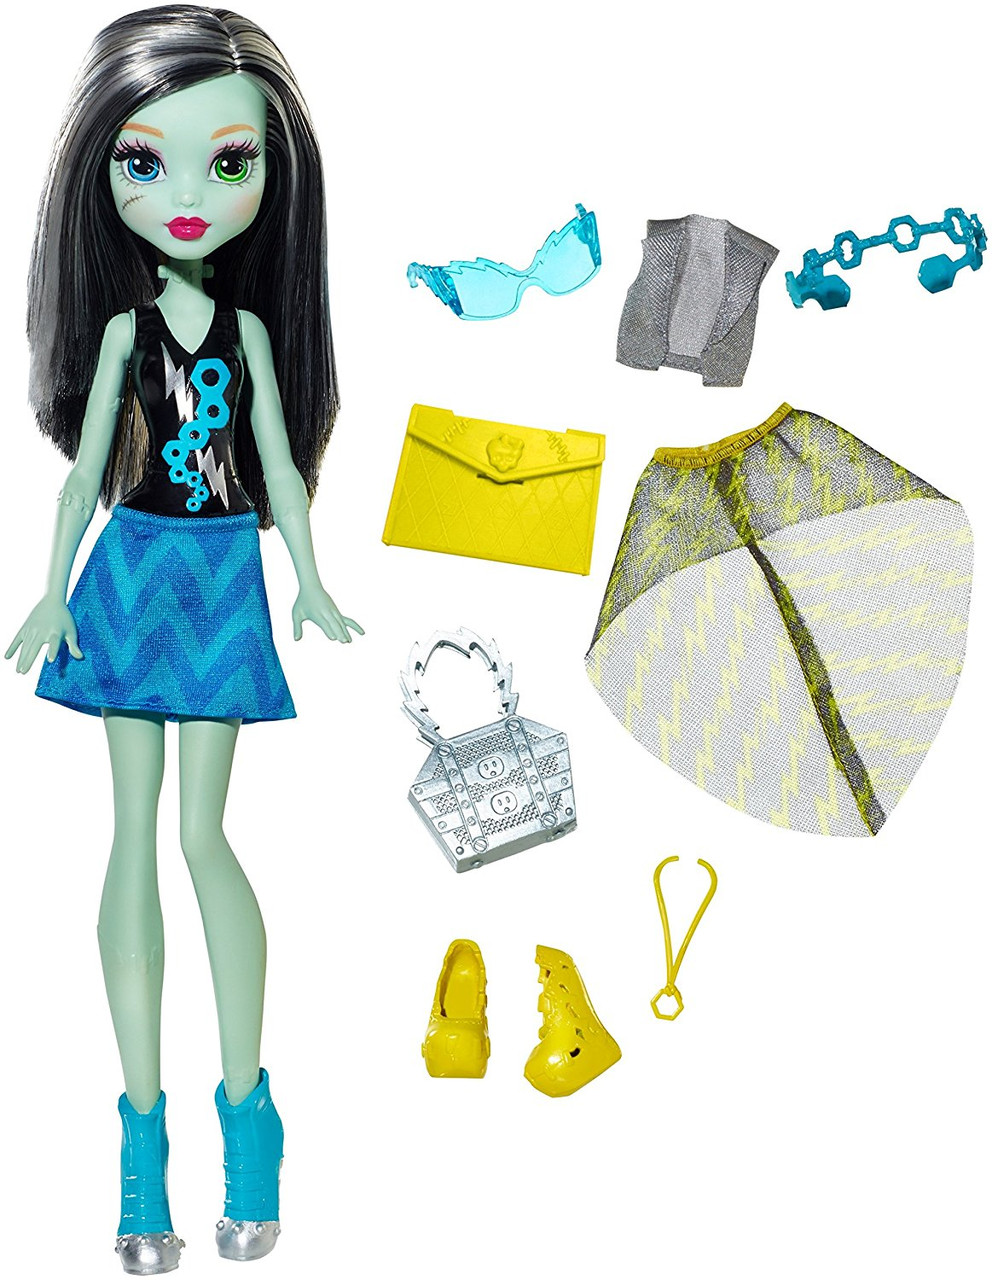 Френки Штайн Модницы, Monster High Day-To-Night Fashions Frankie Stein , фото 1